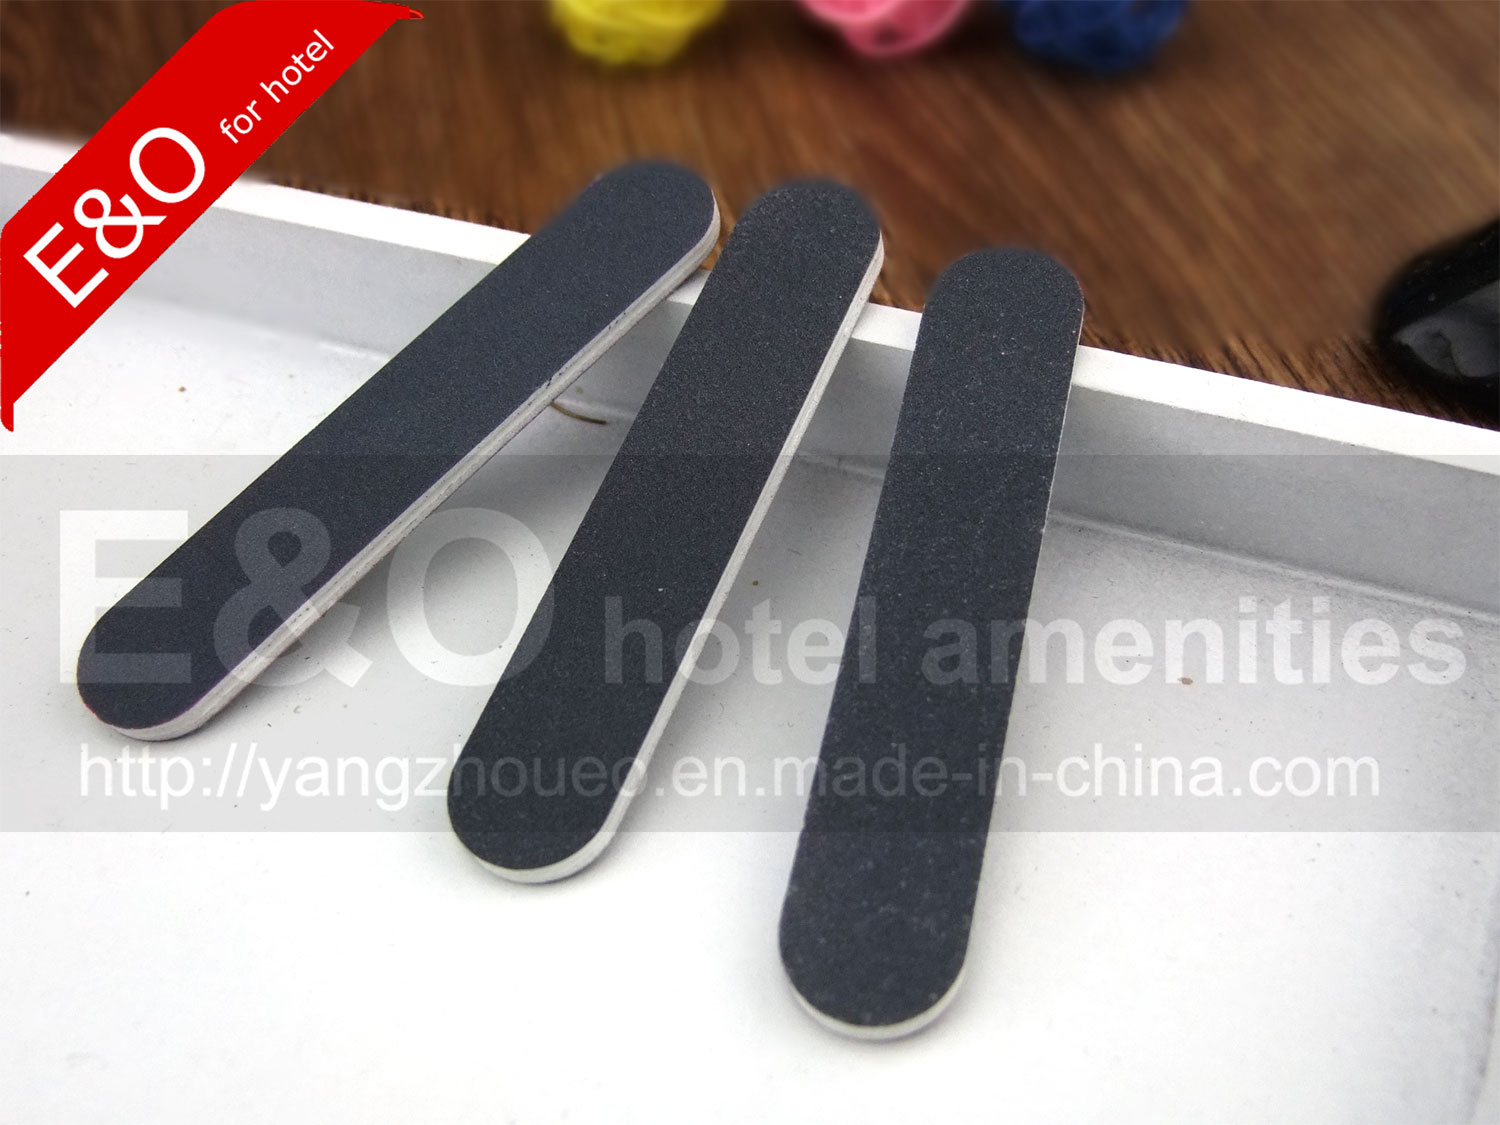 Hotel Amenity Gray Color Short Nail File Emery Board - Buy KEYWORD1 ...